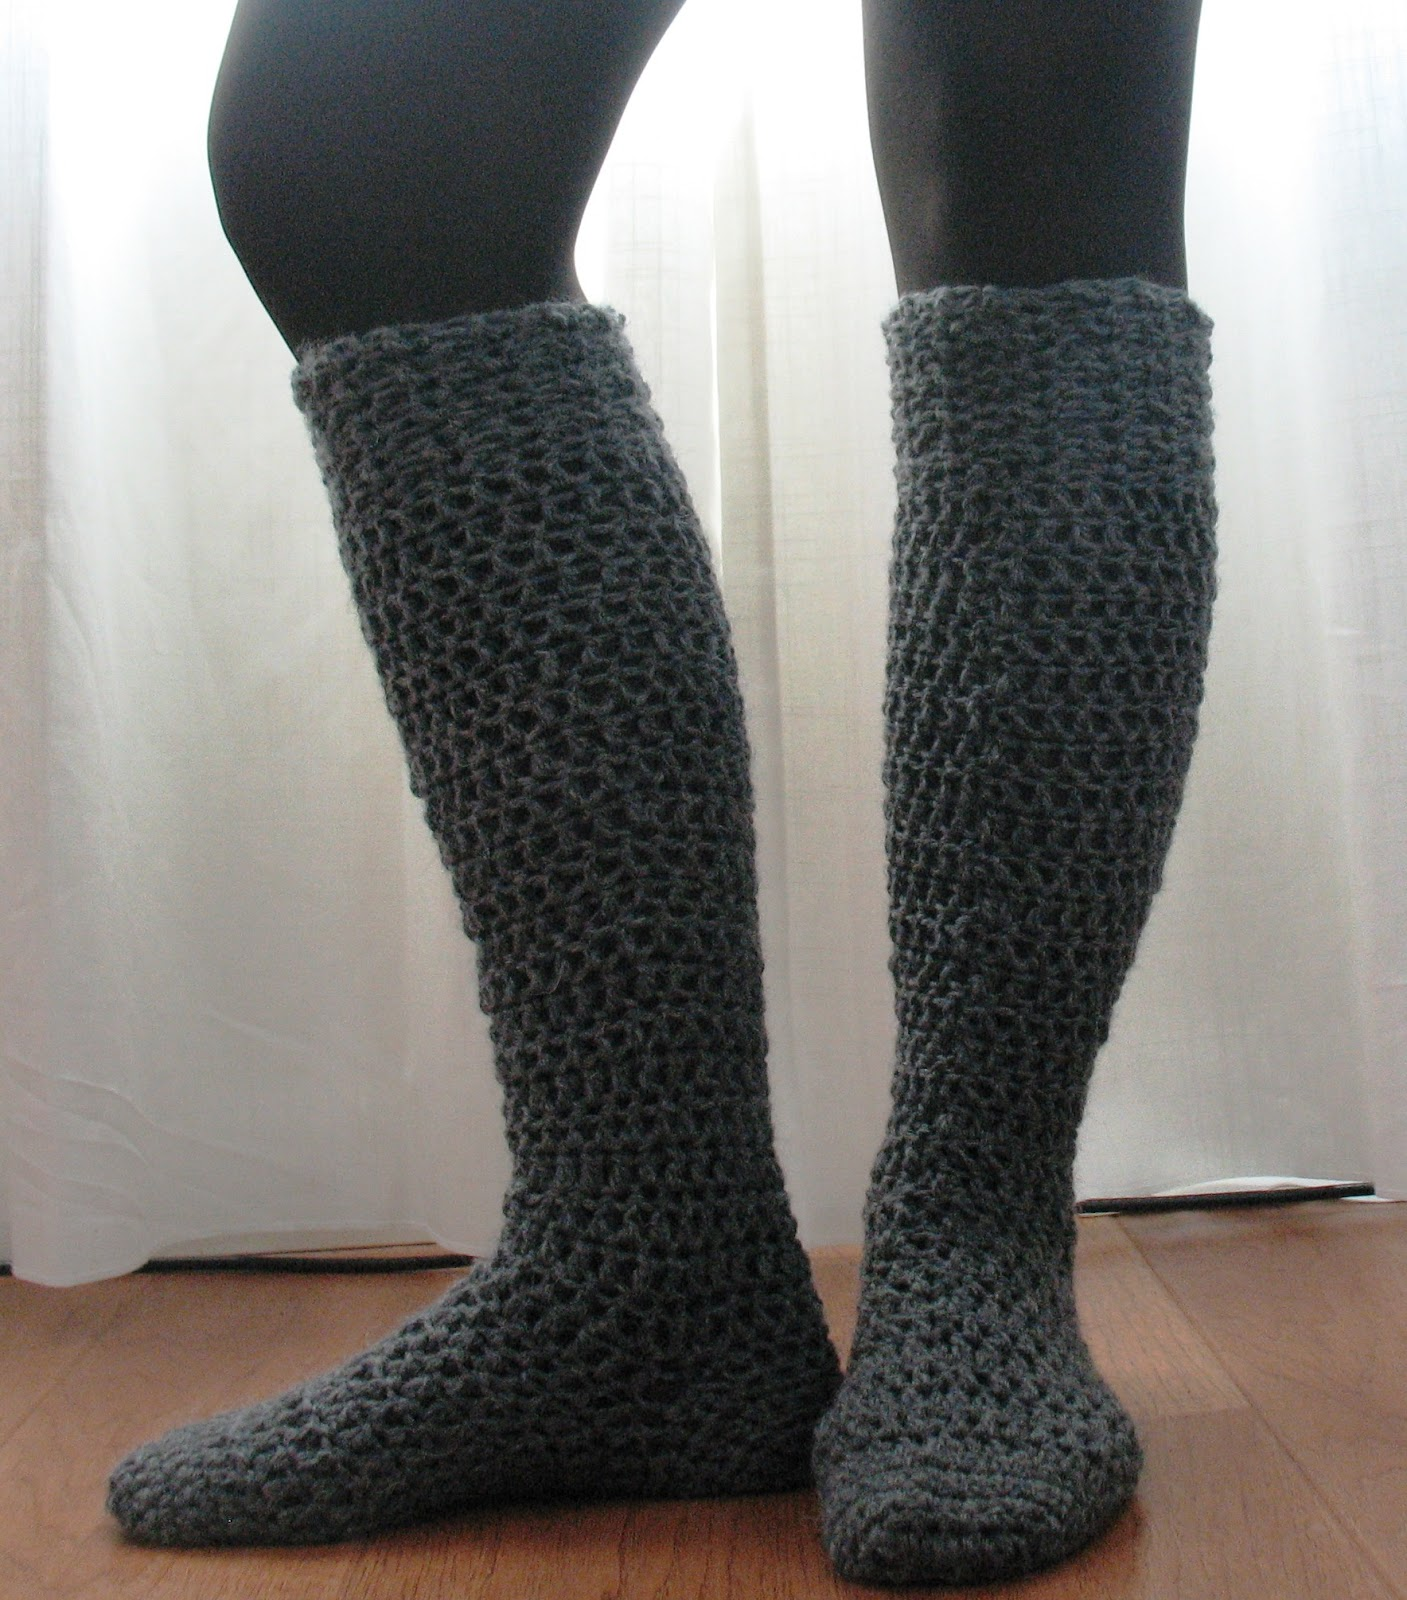 Free Crochet Pattern Knee High Socks : Ball Hank n Skein: Knee-High Boot Socks!